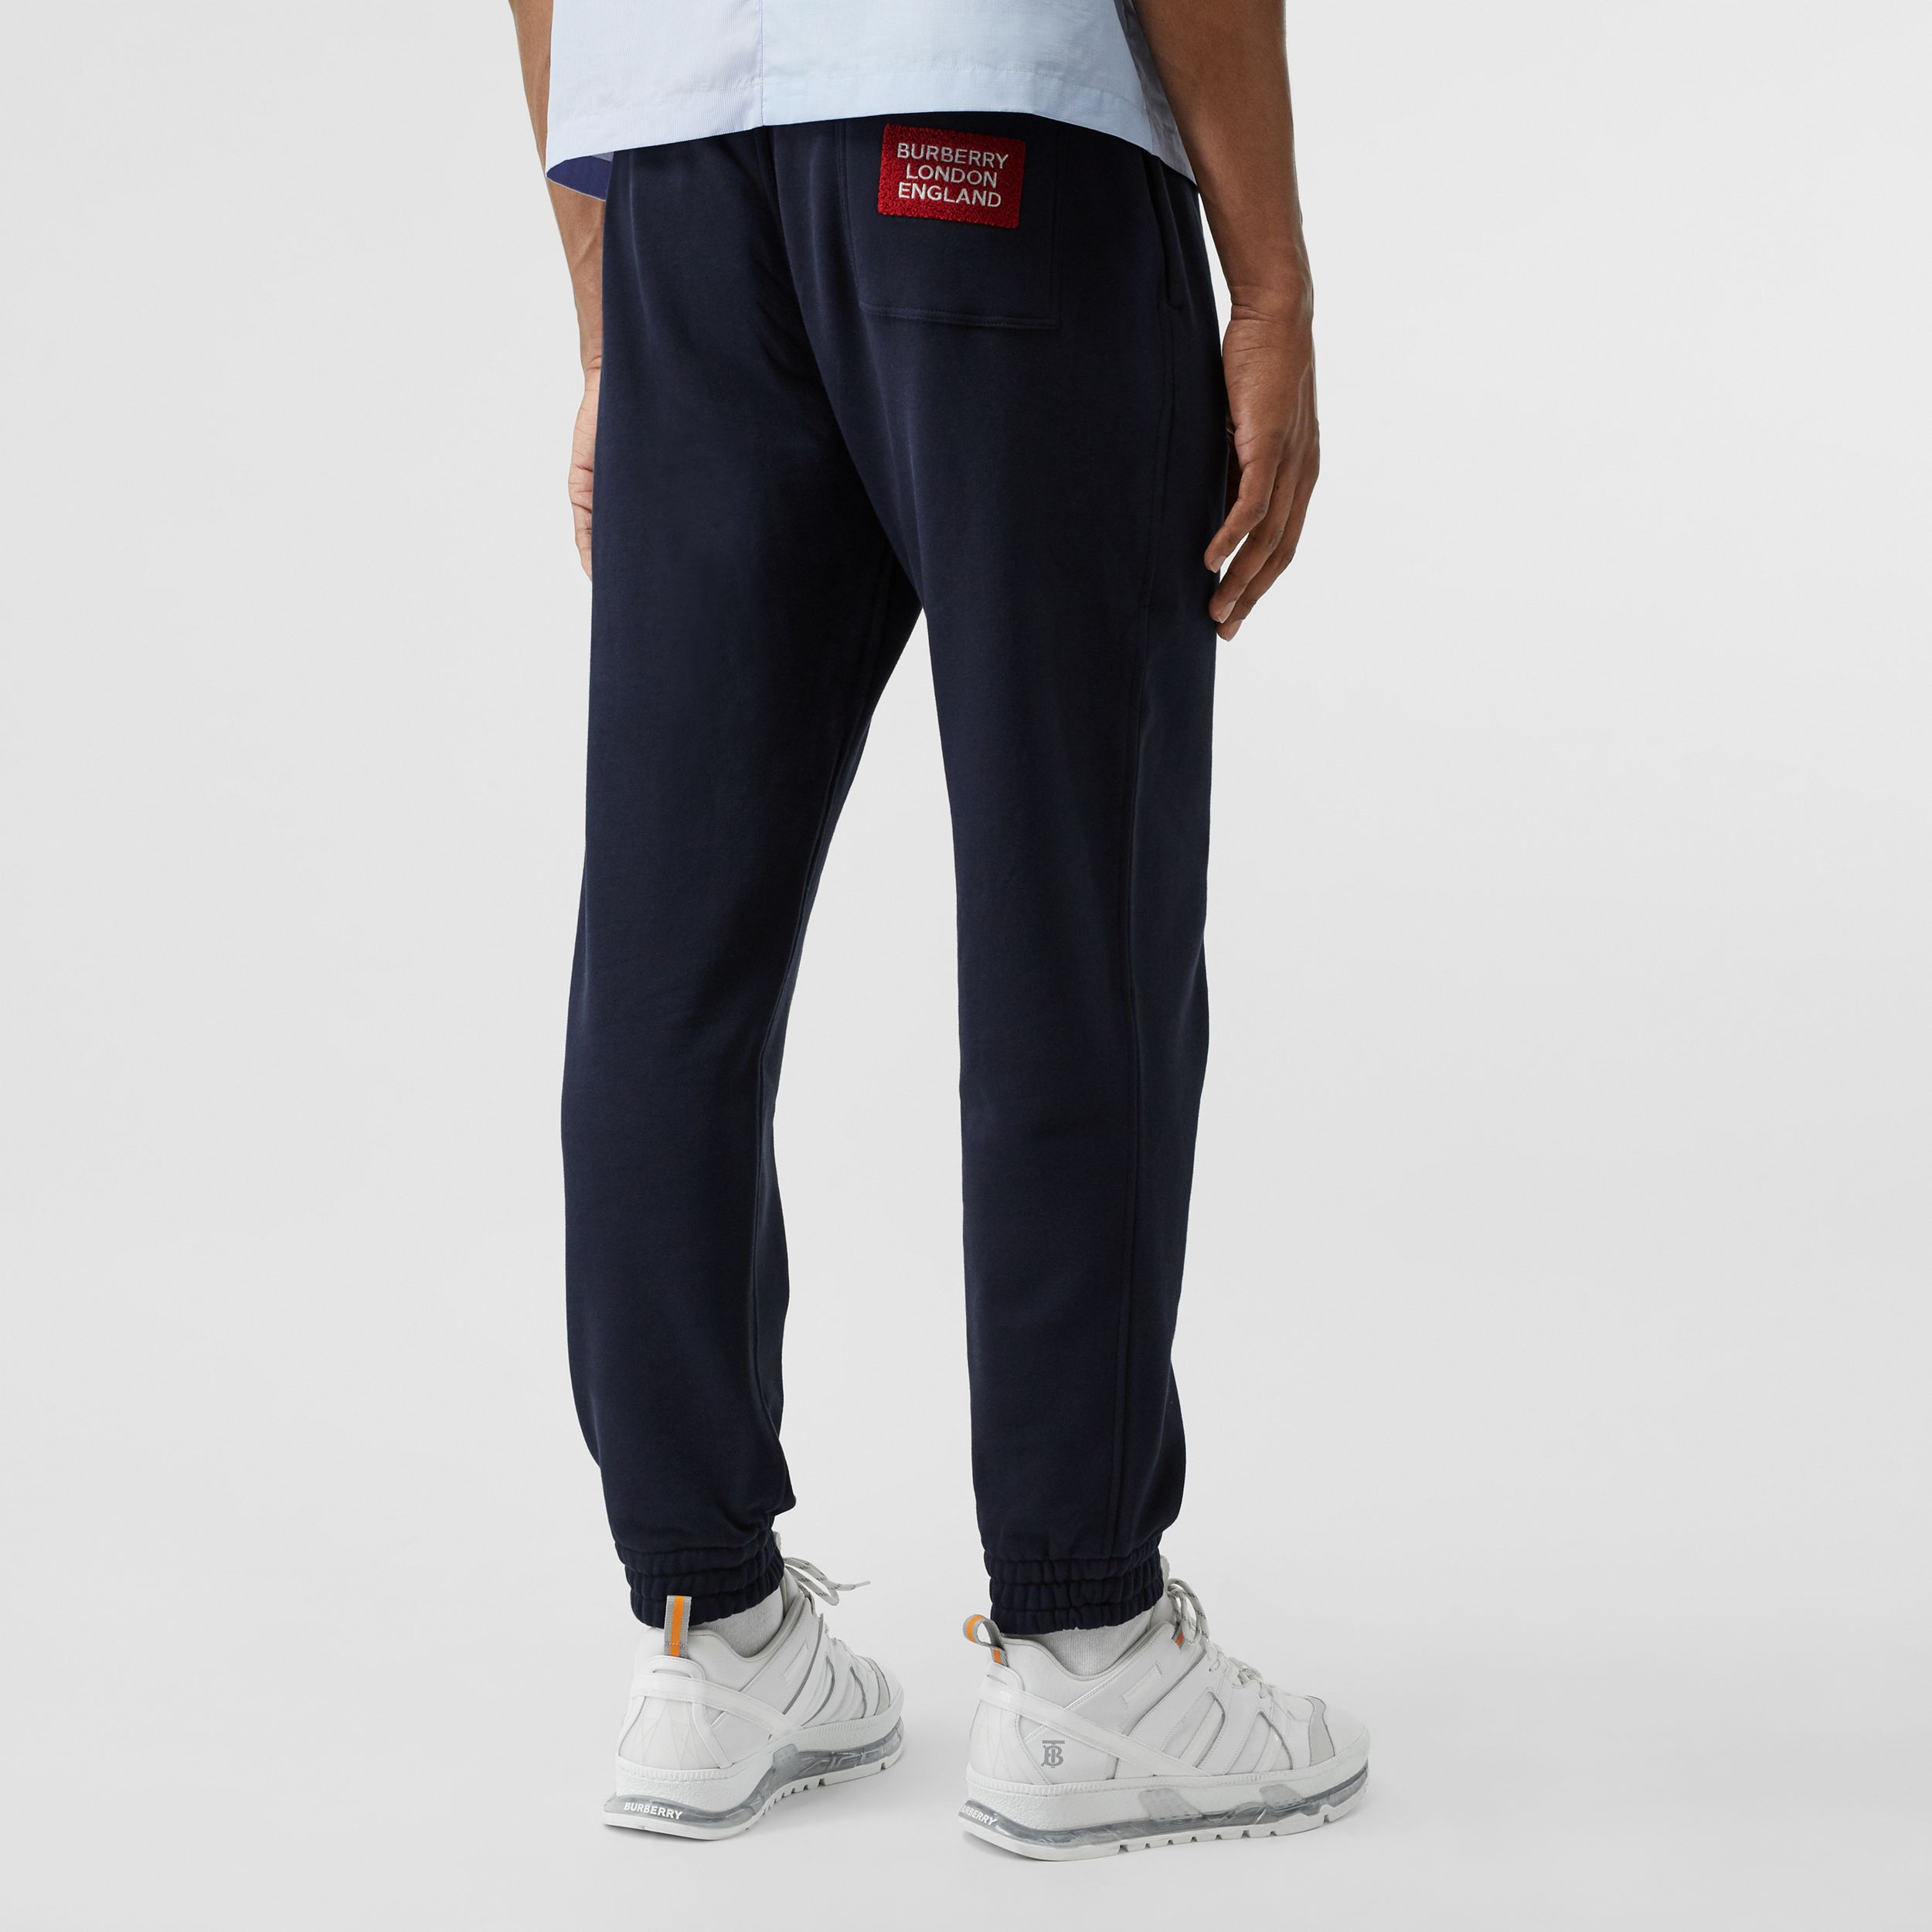 Logo Appliqué Cotton Trackpants in Navy - Men | Burberry - 3